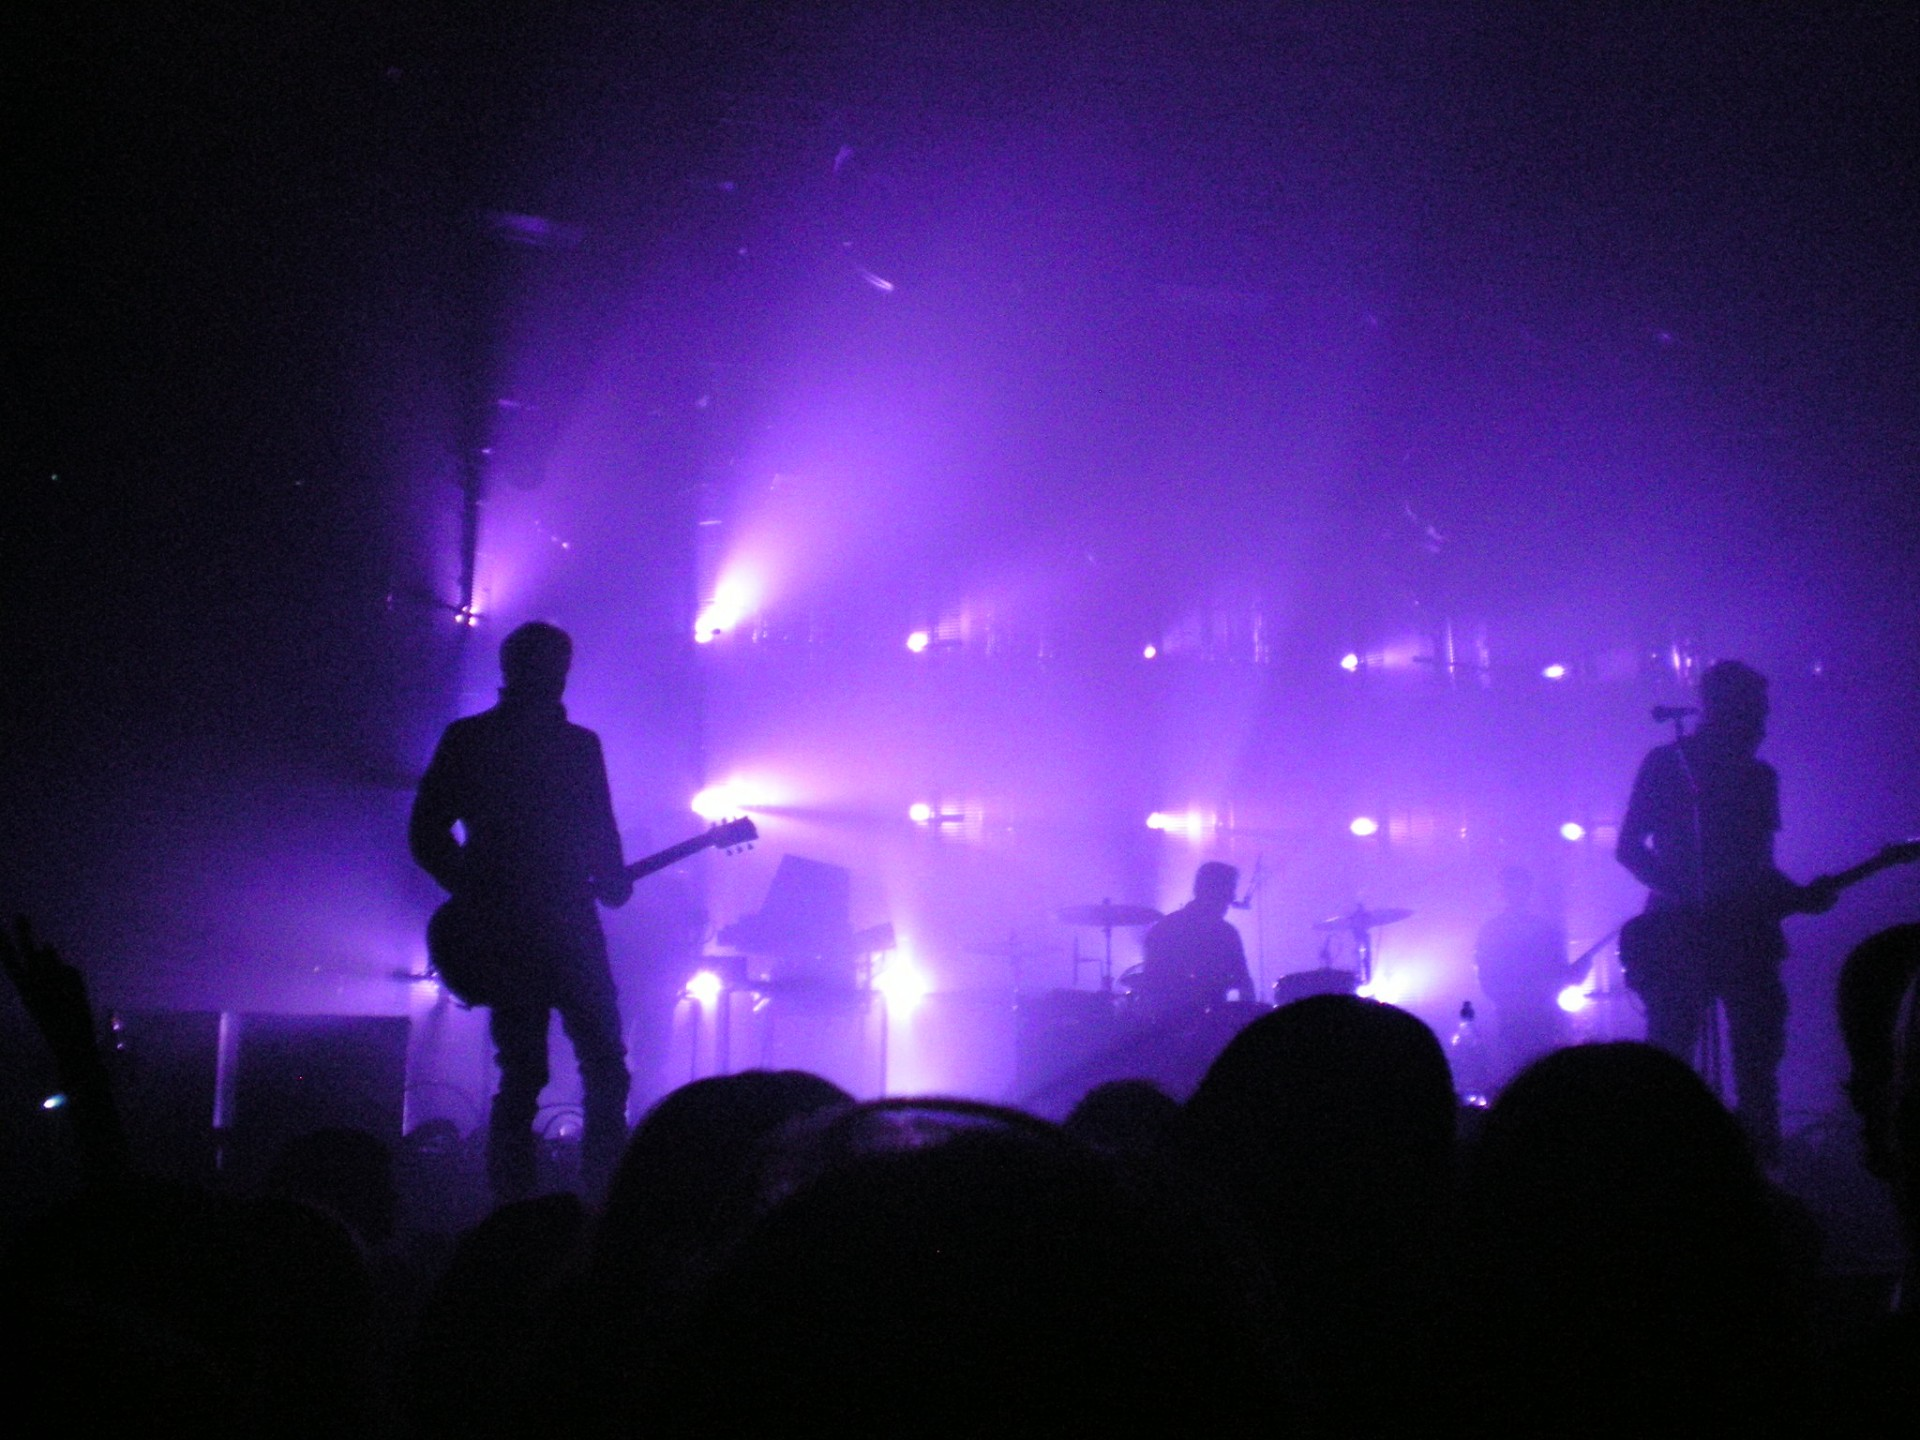 Fall Out Boy Wallpaper Mania Concert With Purple Lights Free Stock Photo Public